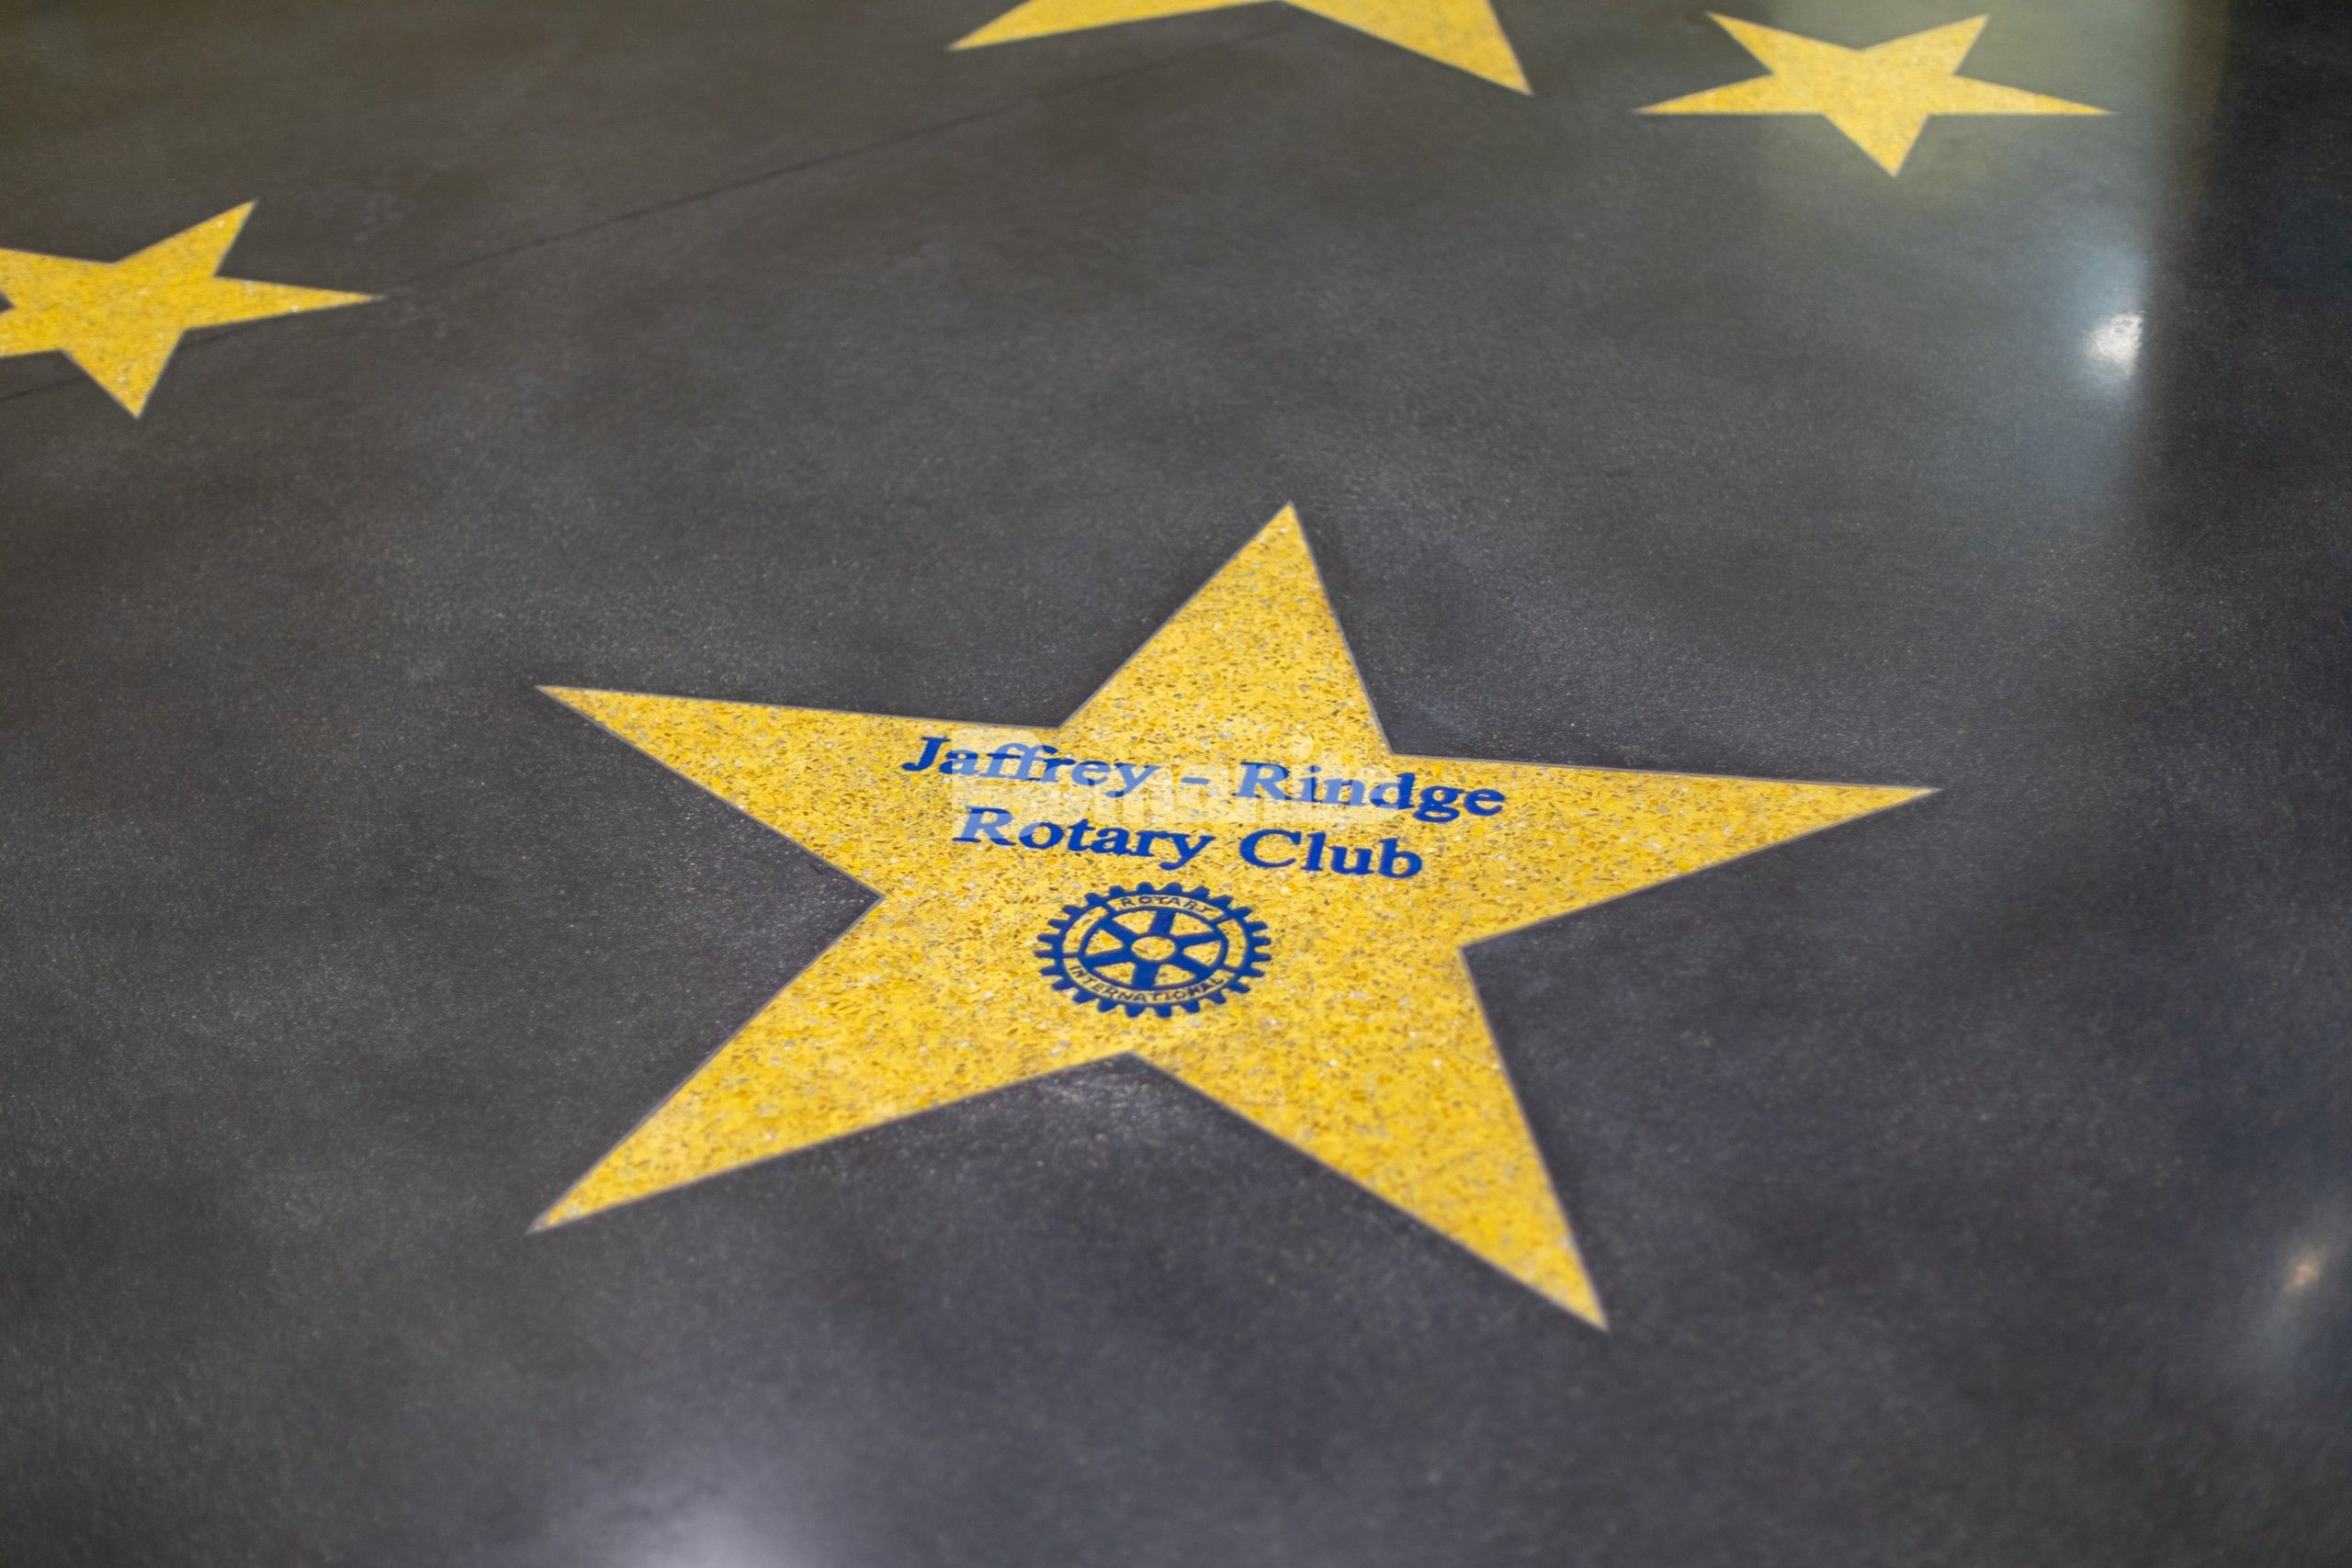 Premier Concrete Construction brought to life the Hollywood walk of fame in the main lobby of the Jaffrey Park Theatre with a sleek dark Bomanite Renaissance Polished Concrete Floor as the background to the Golden Stars engraved with donor names in brilliant blue created with the Bomanite Modena TG system.